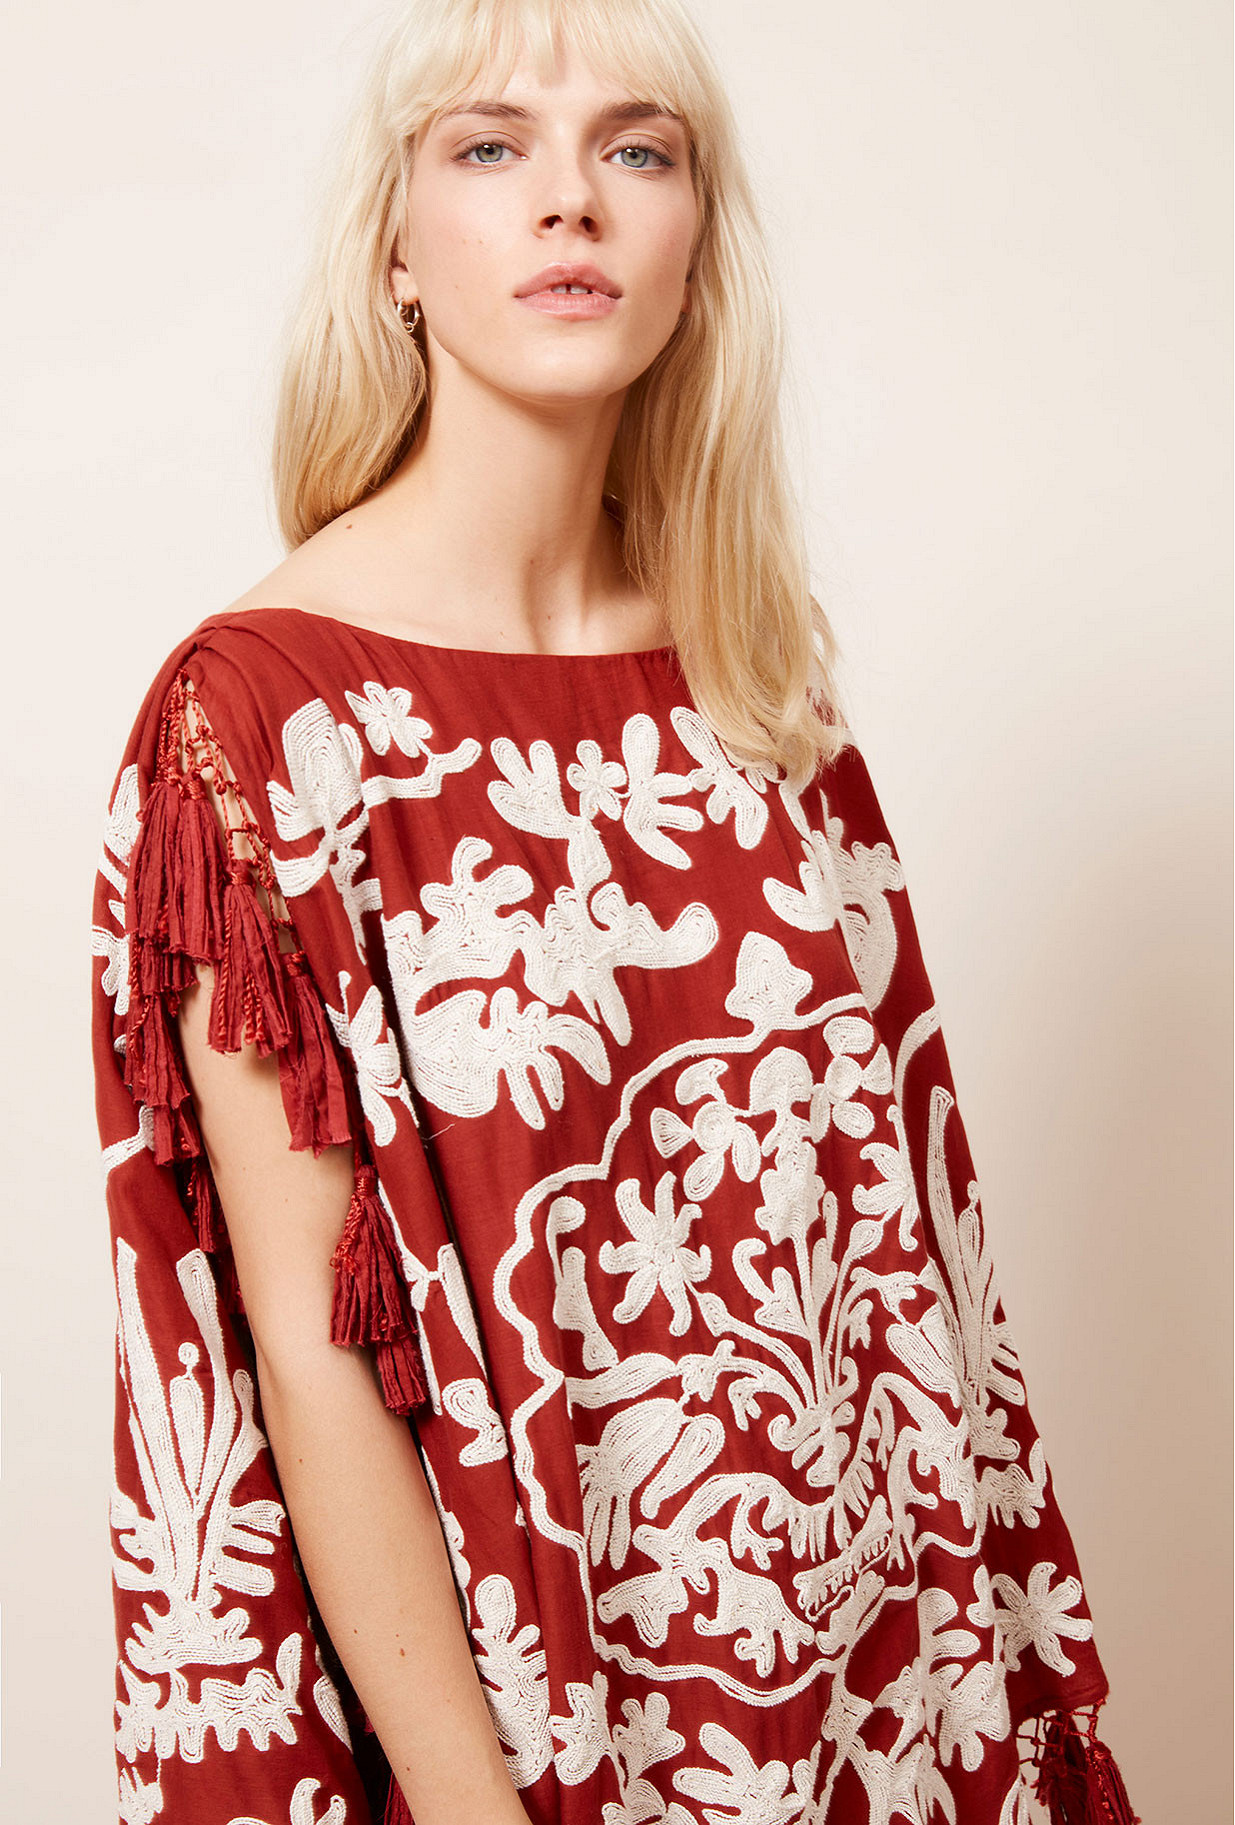 Paris clothes store Poncho  Bora-bora french designer fashion Paris